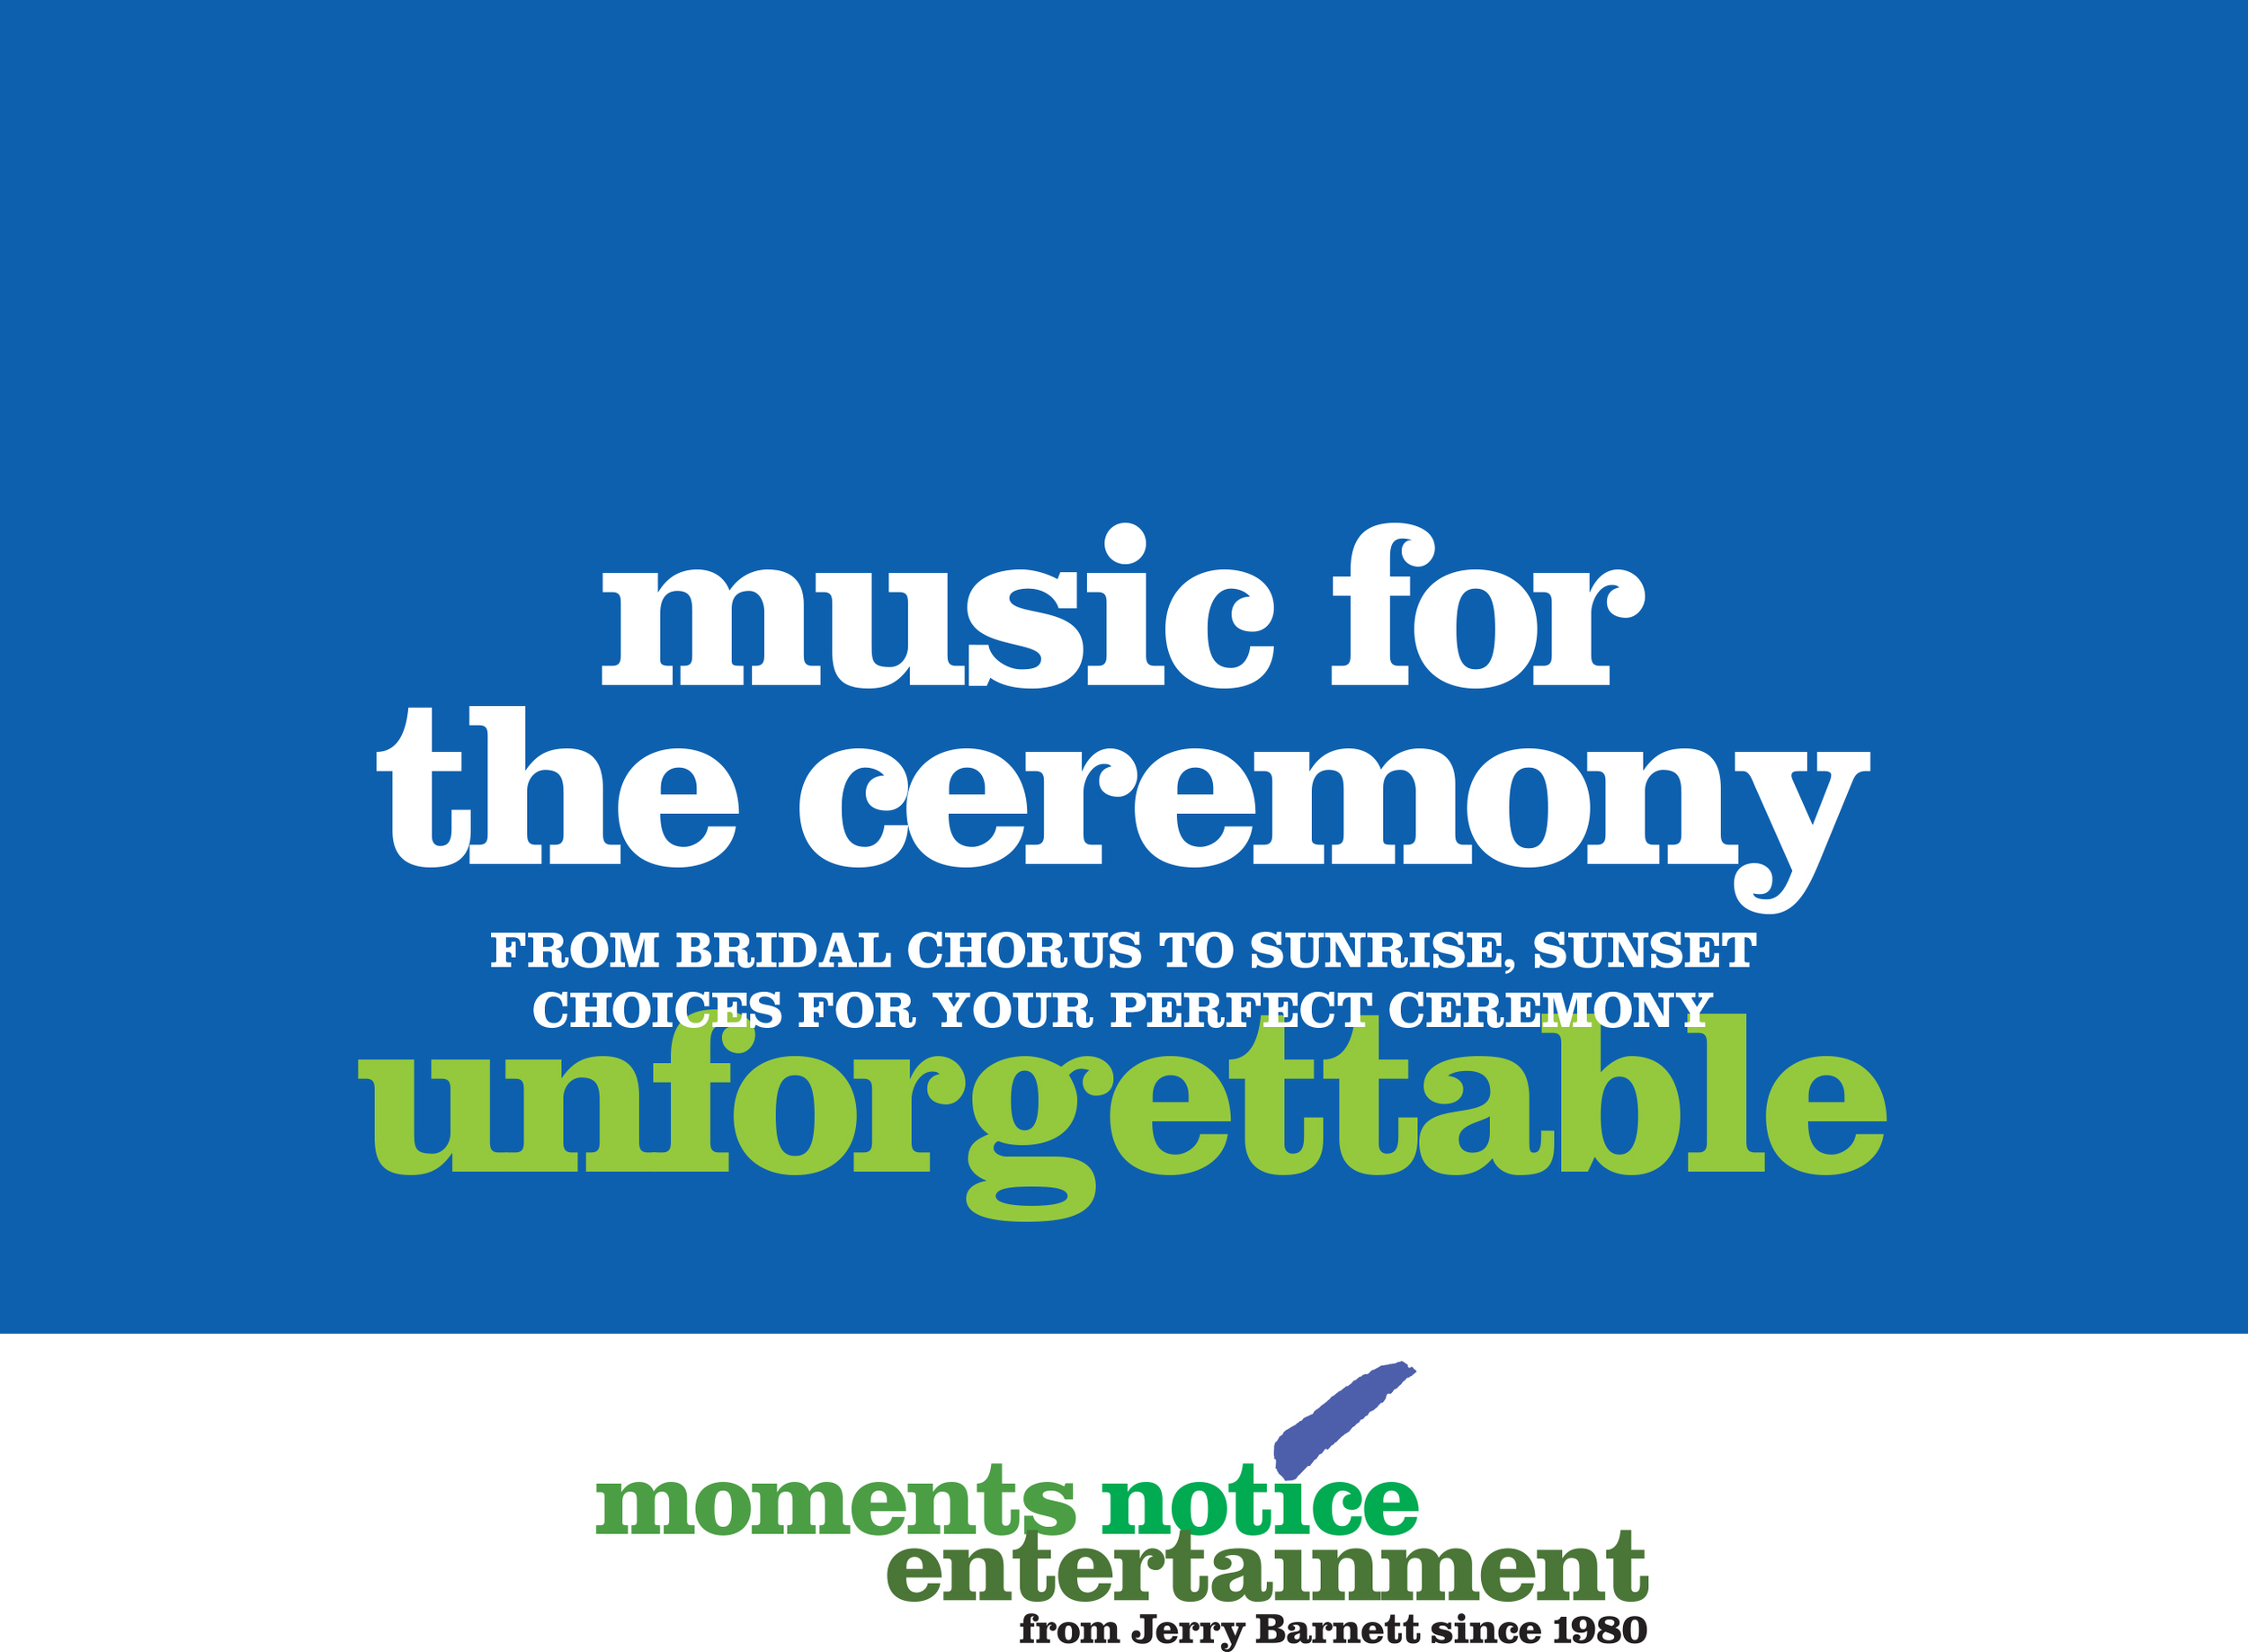 Download music selections for the ceremony